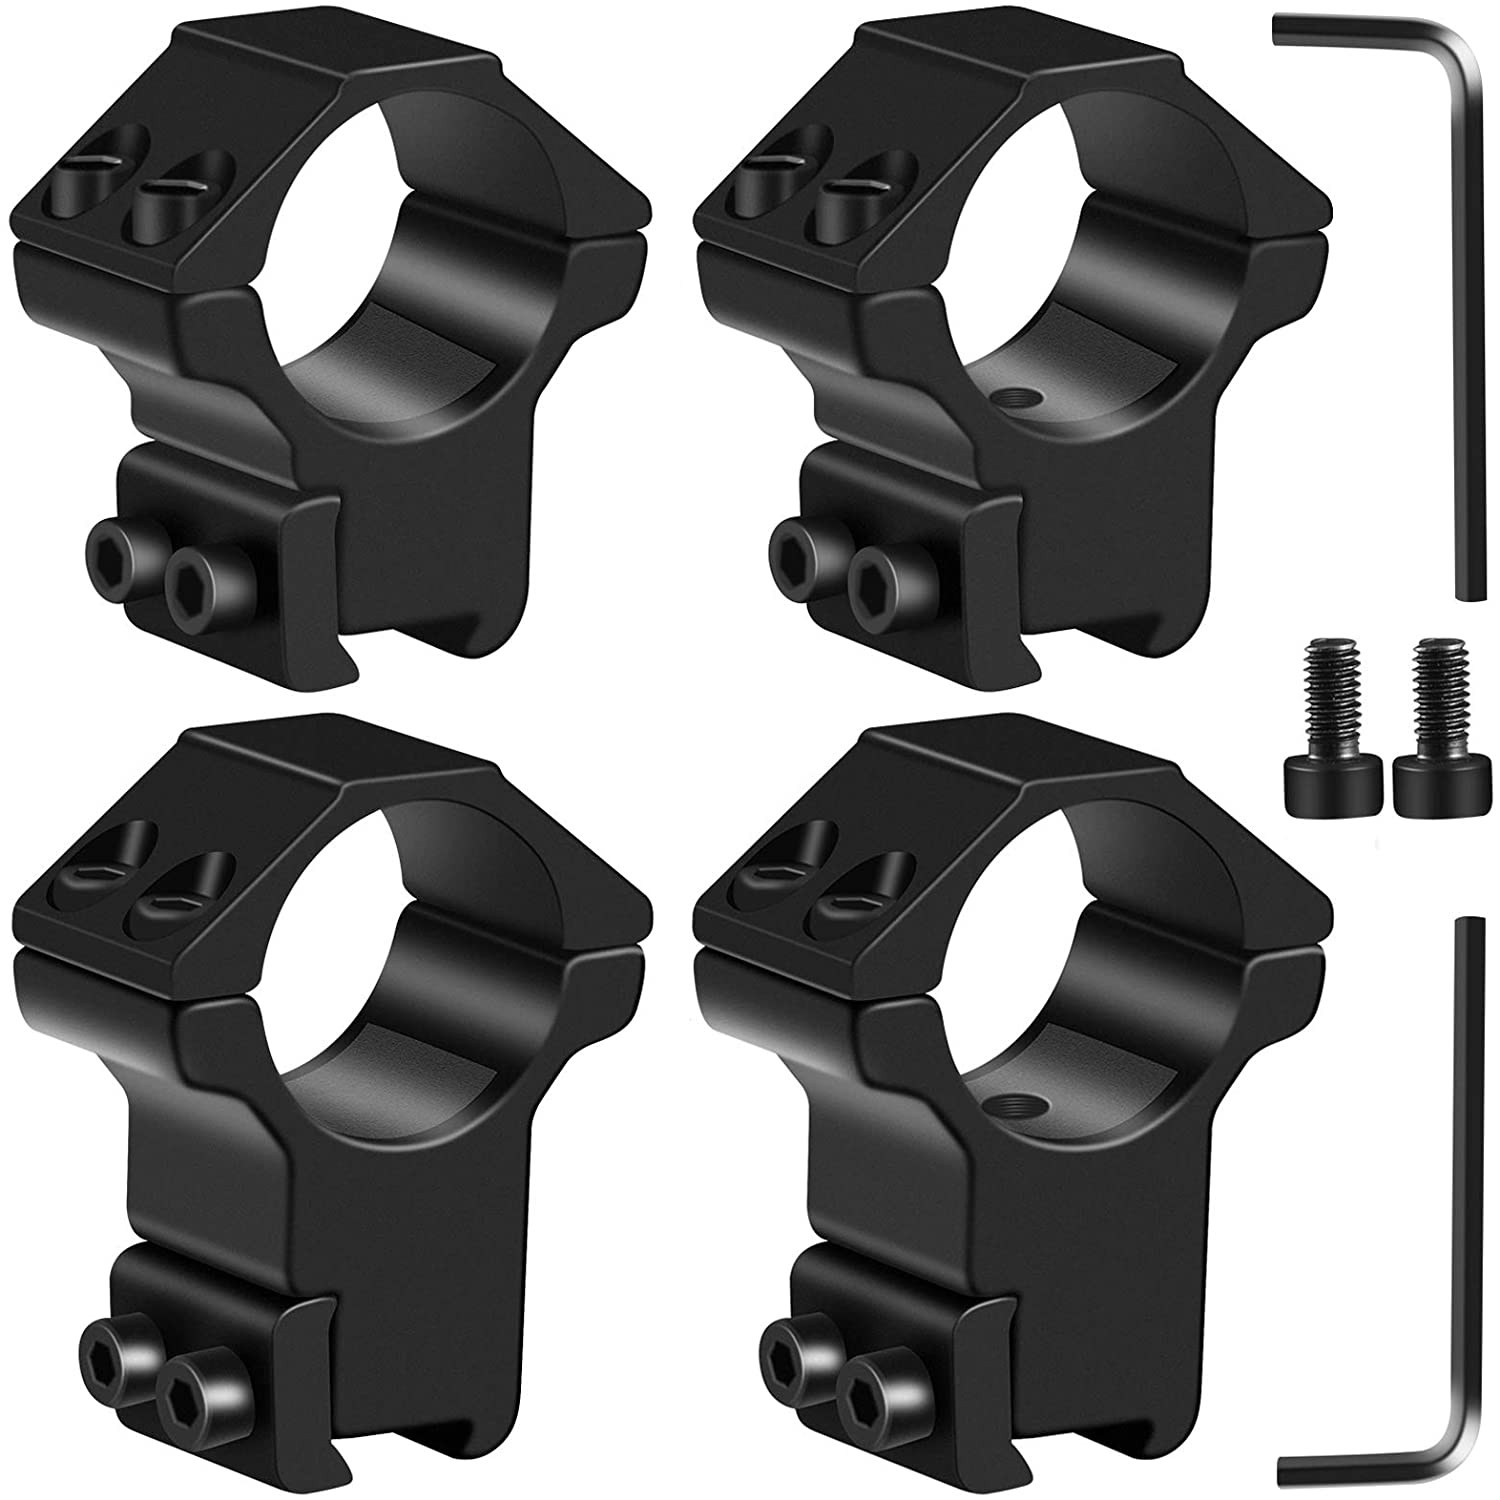 LONSEL 1'' Dovetail Scope Rings, 2Pcs High Profile & 2Pcs Medium Profile 1 Inch Scope Mount Rings for 11mm Dovetail Rails - Pack of 4